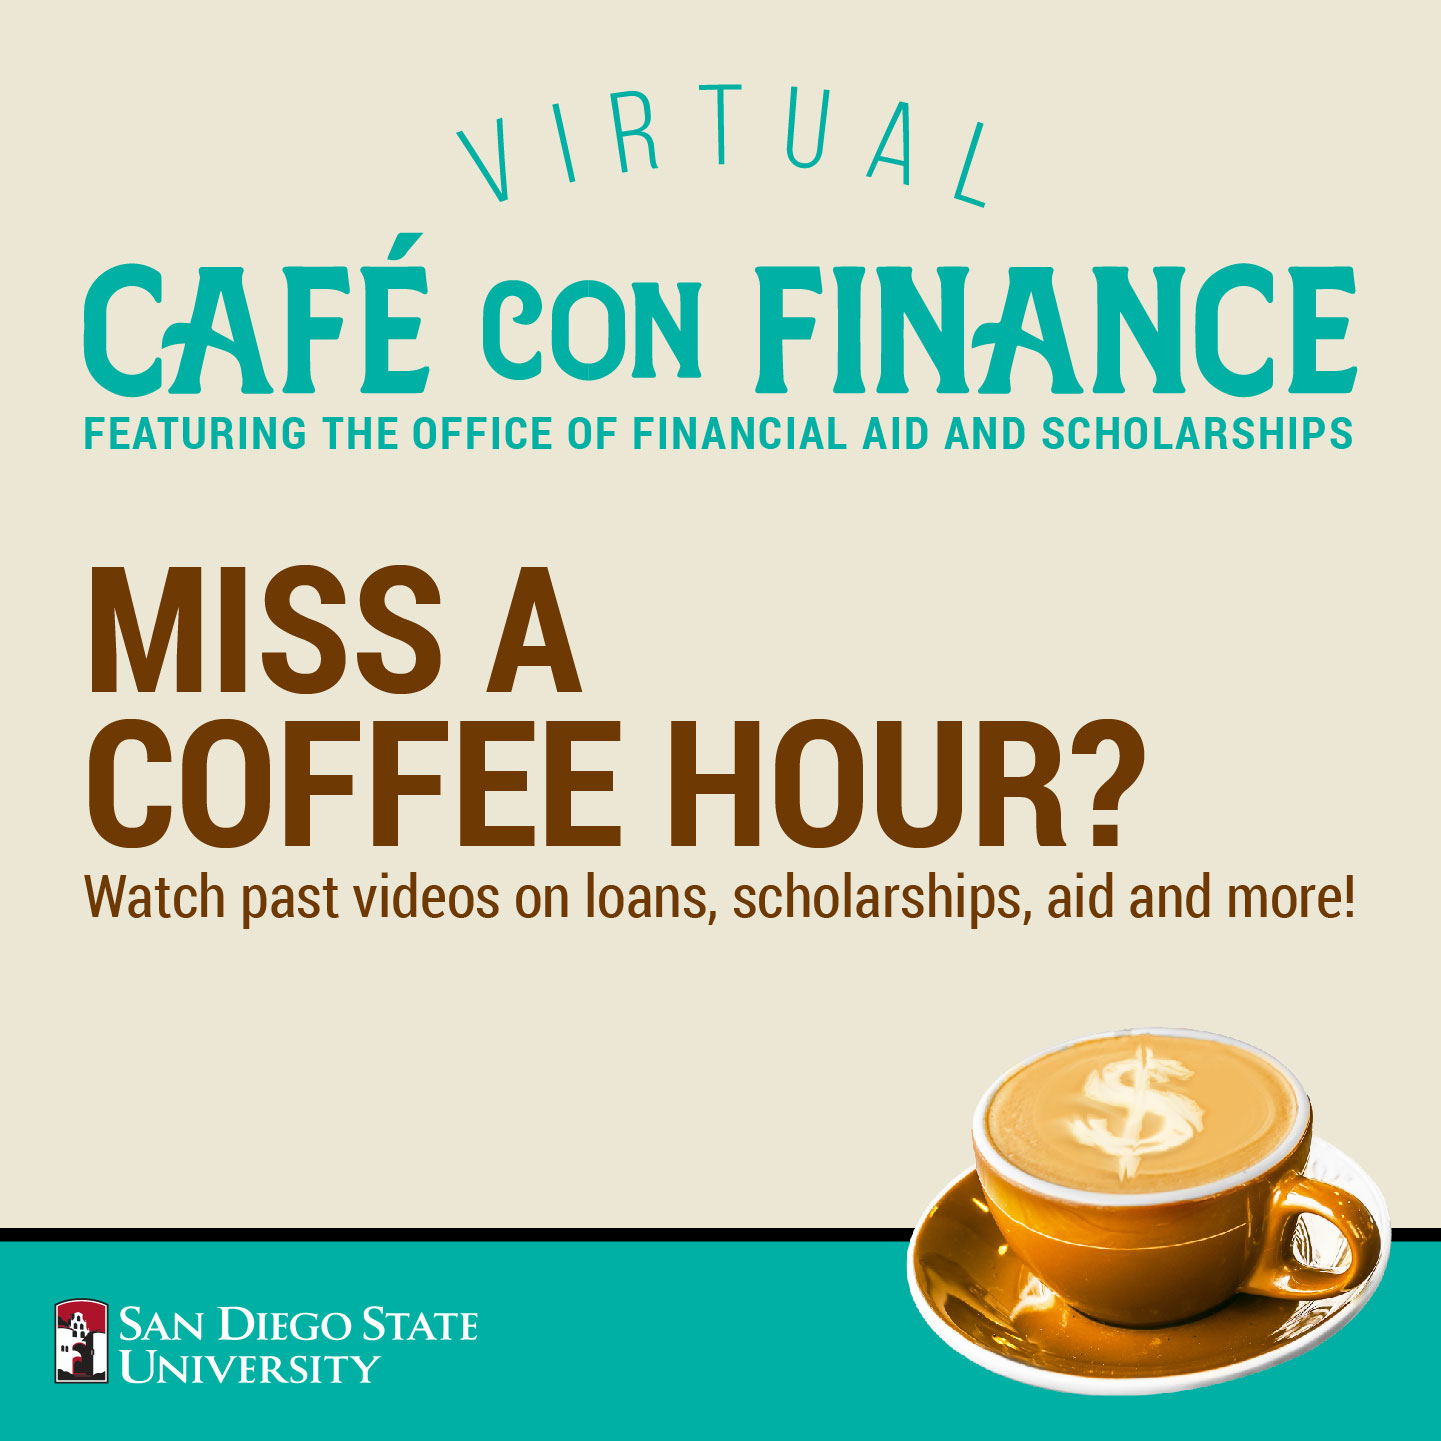 Coffee Hour: Parent Session, Oct 21 at 5 pm is about Financial aid changes and updates